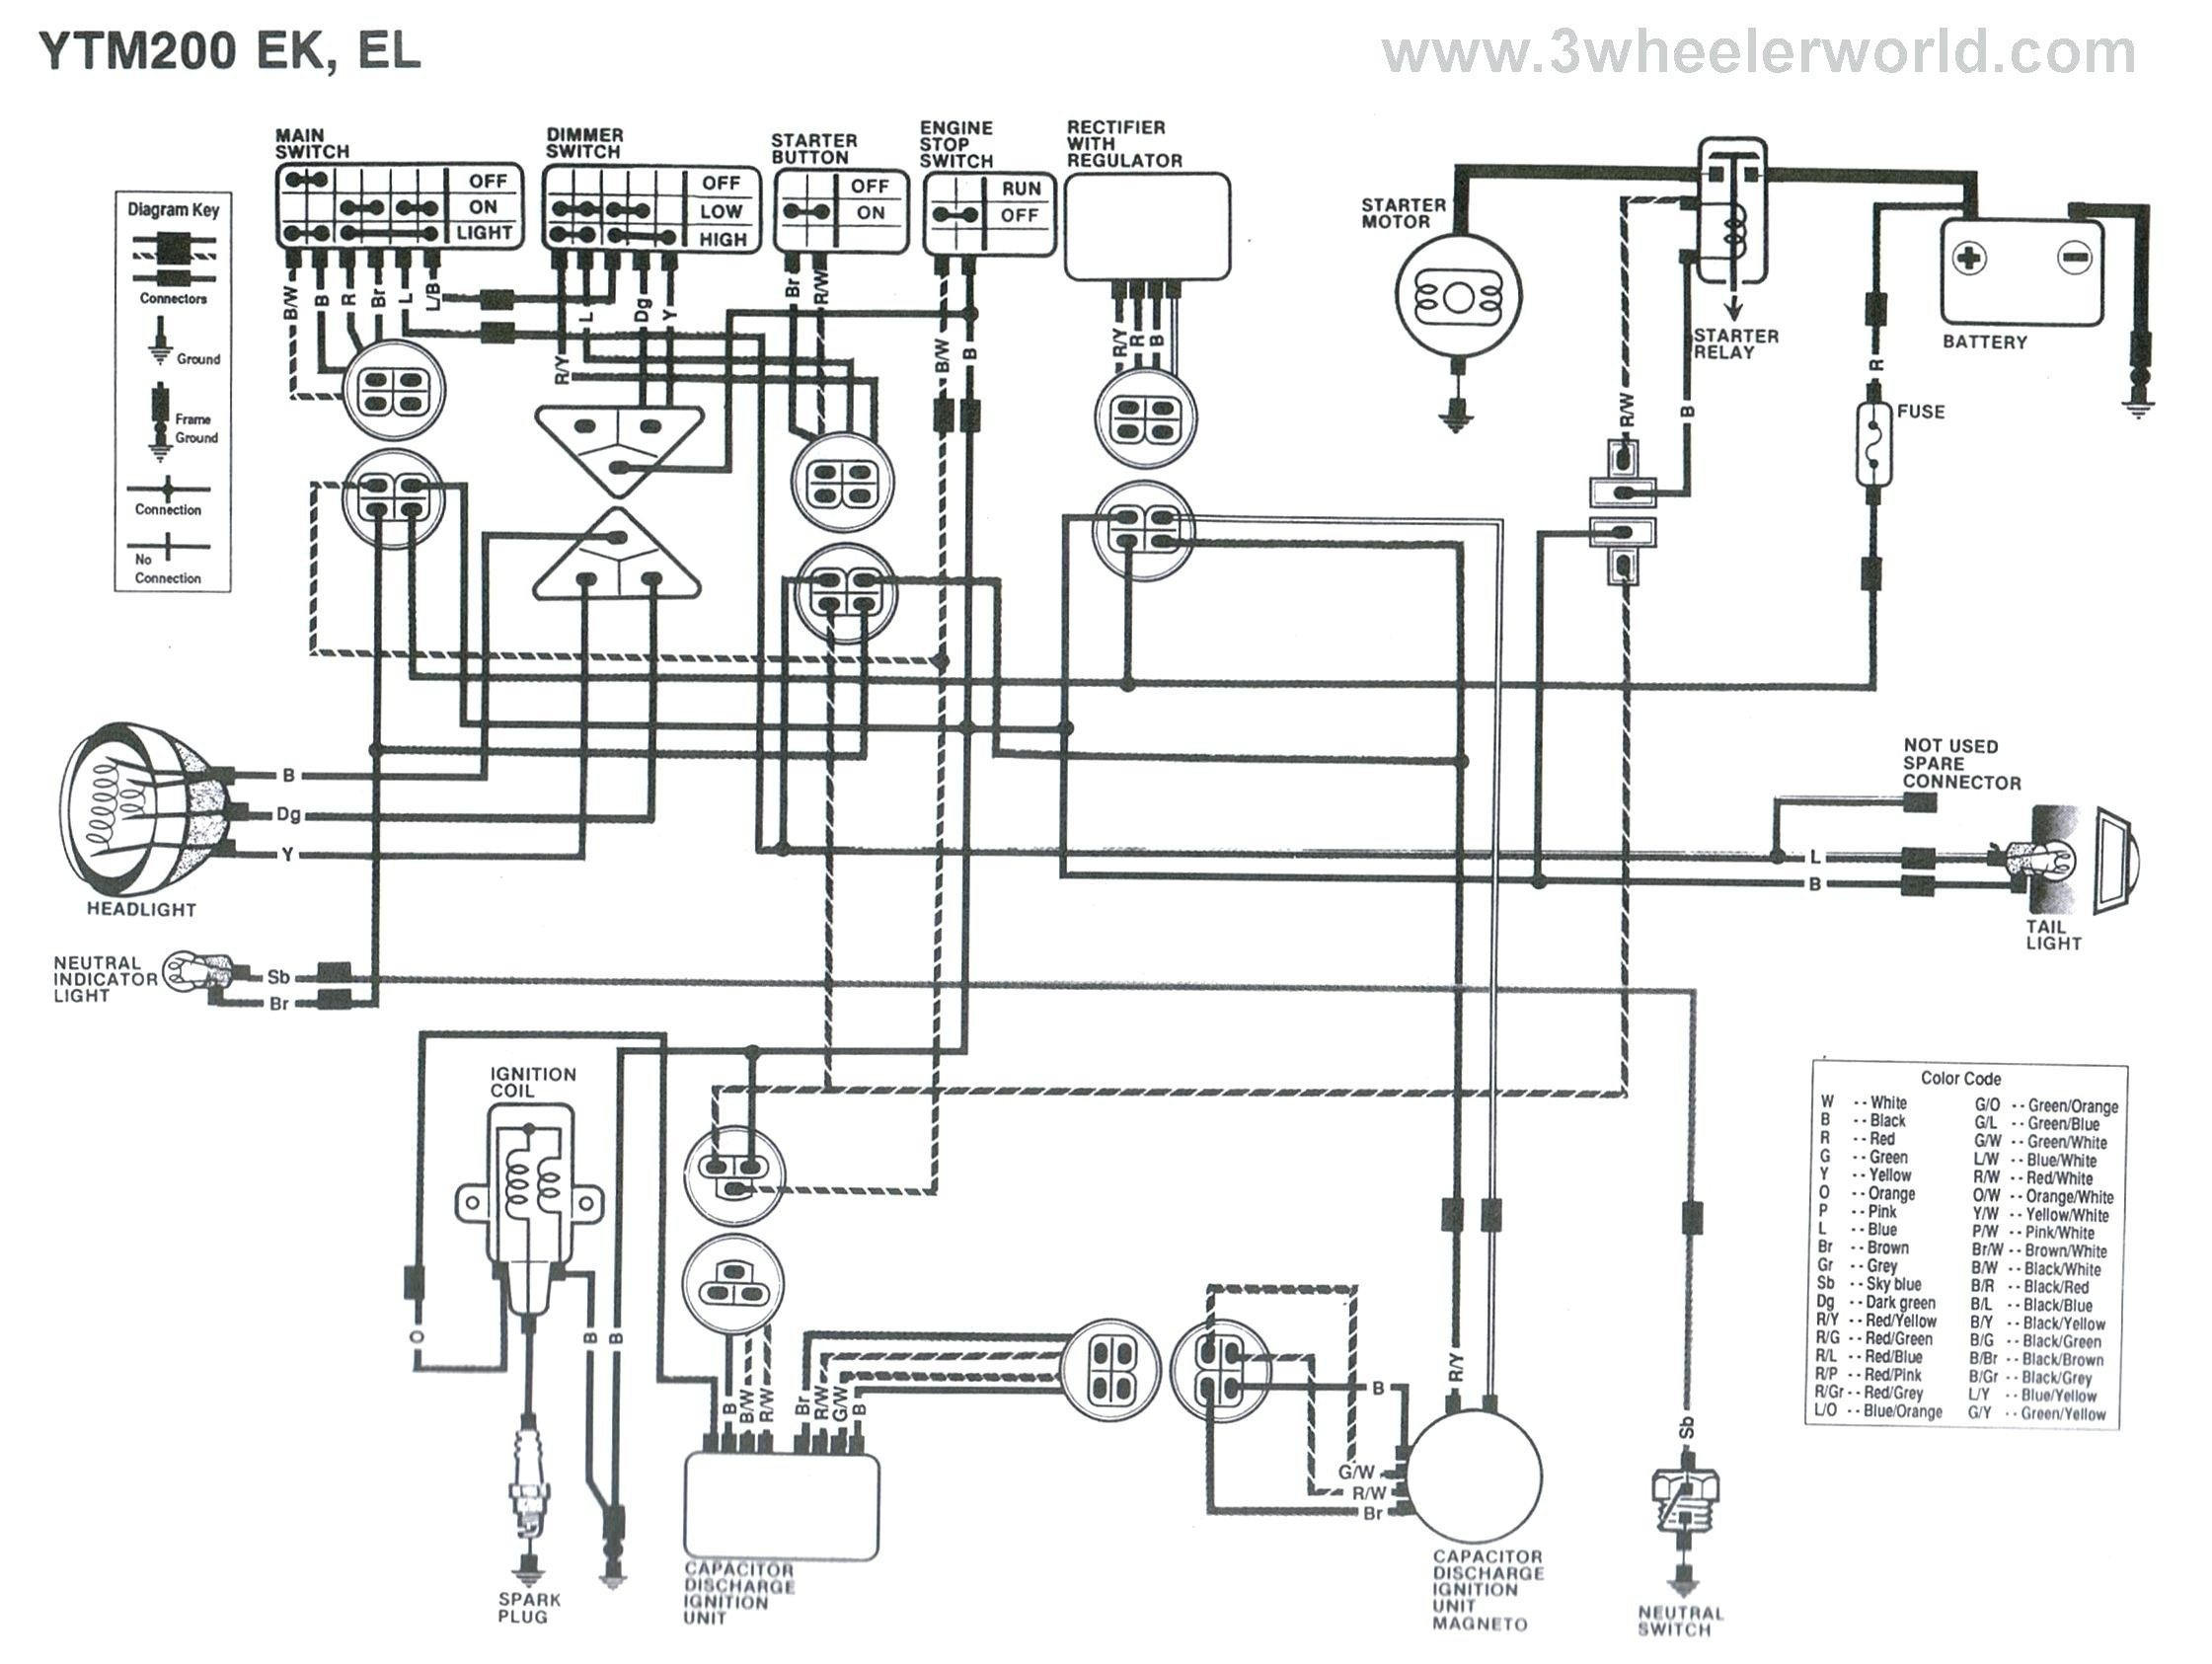 Nissan Outboard Tachometer Wiring | Wiring Diagram - Yamaha Outboard Tachometer Wiring Diagram